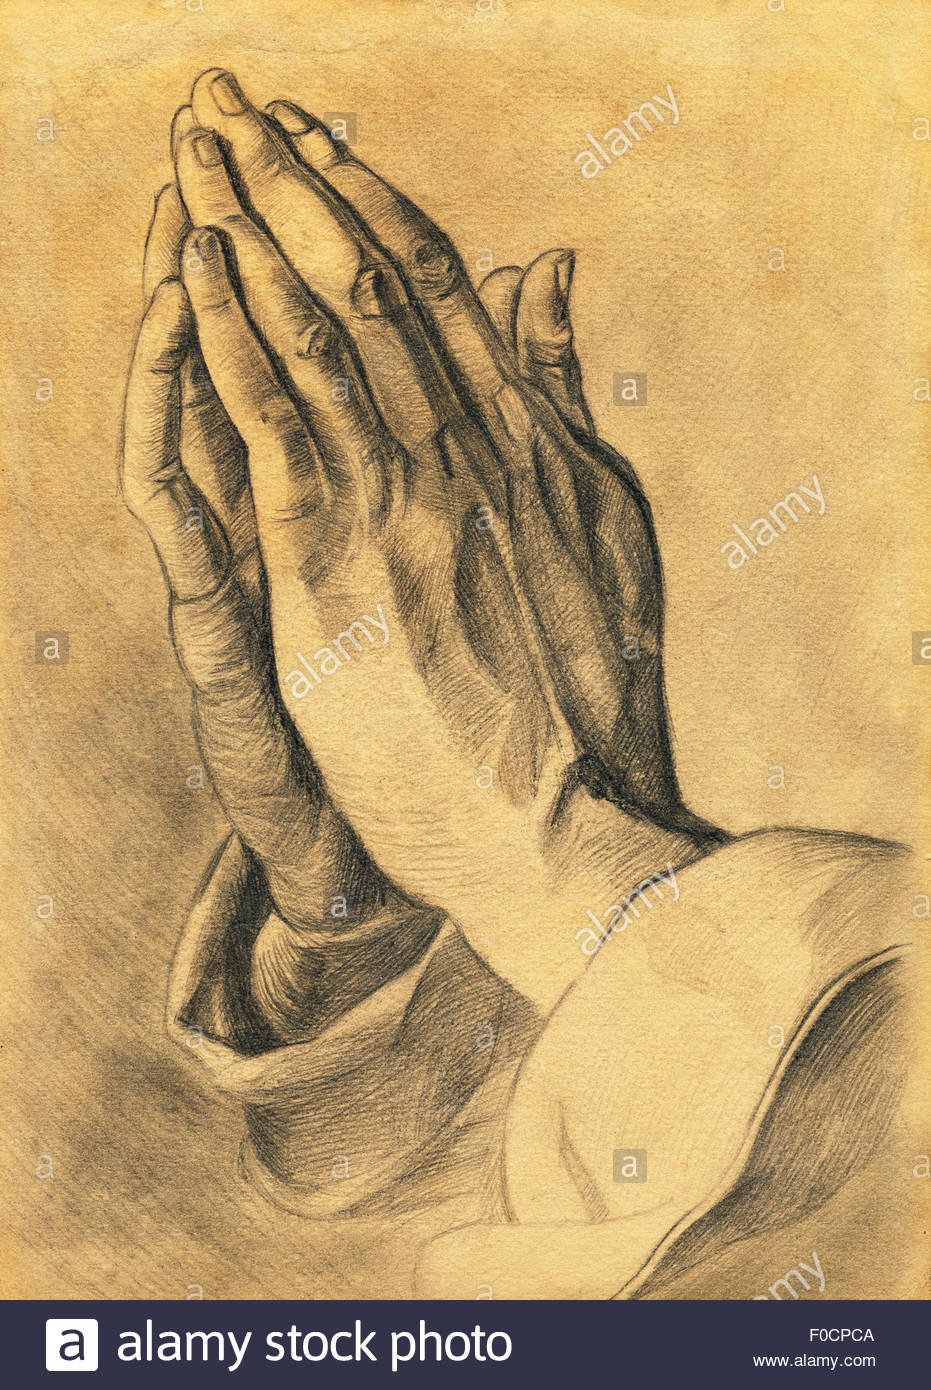 931x1390 Two Hands In Prayer Pose. Pencil Drawing Stock Photo 86332858